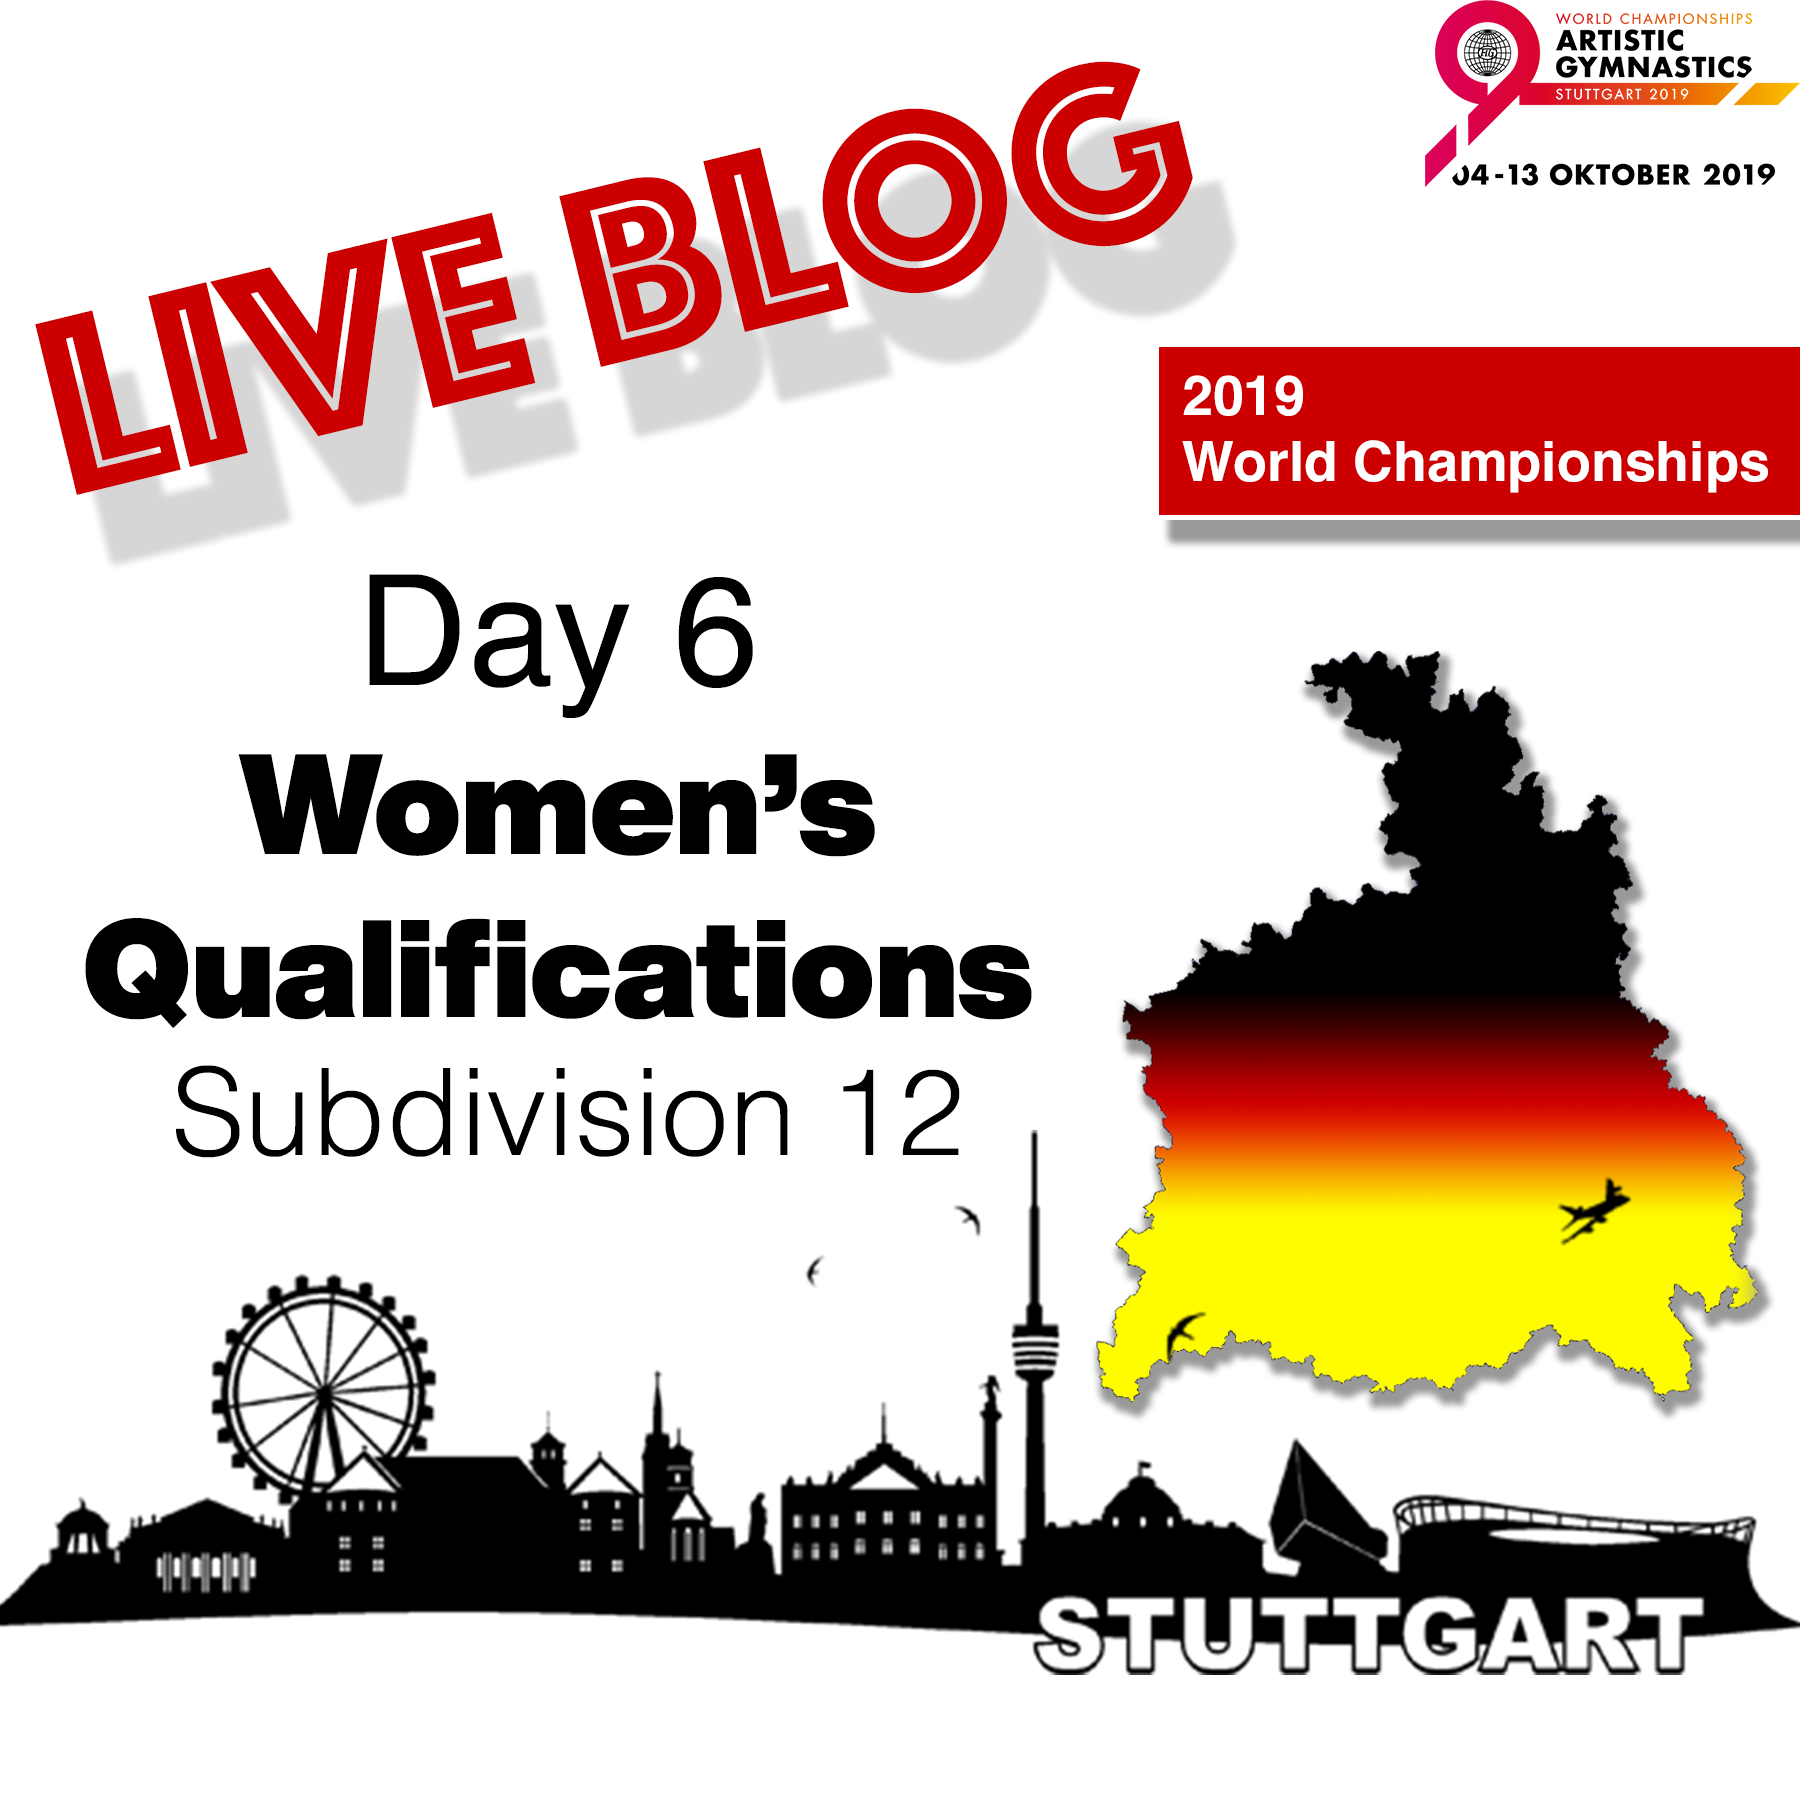 Live Blog: 2019 World Championships – WAG Qualifications – Sub Division 12, Oct. 5th